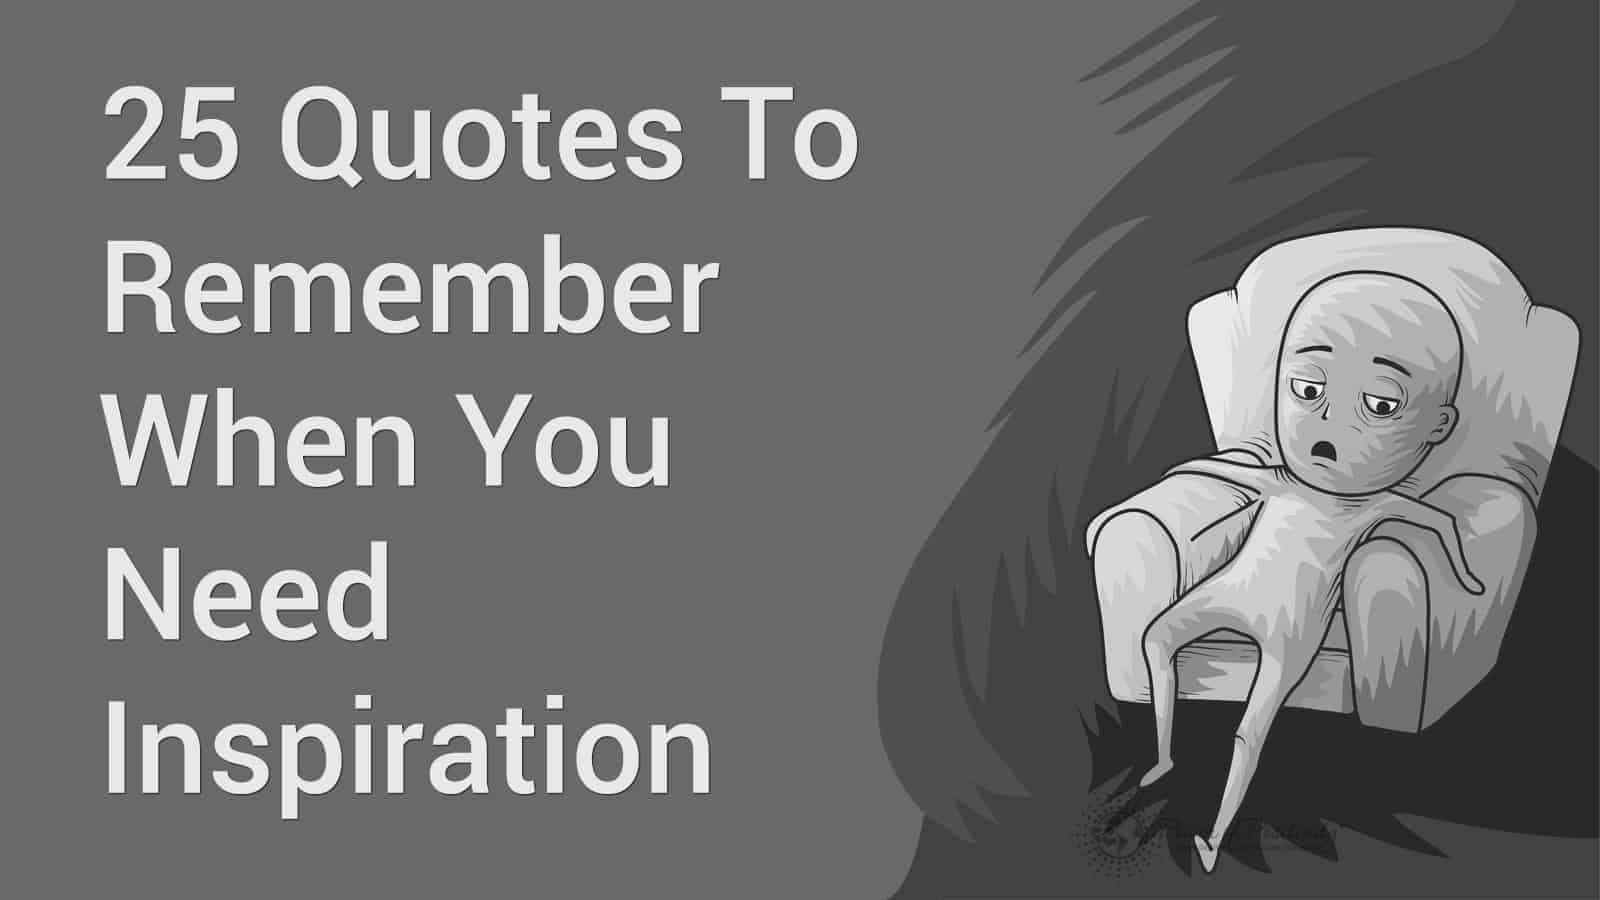 Life Quotes Inspiration 25 Quotes To Remember When You Need Inspiration